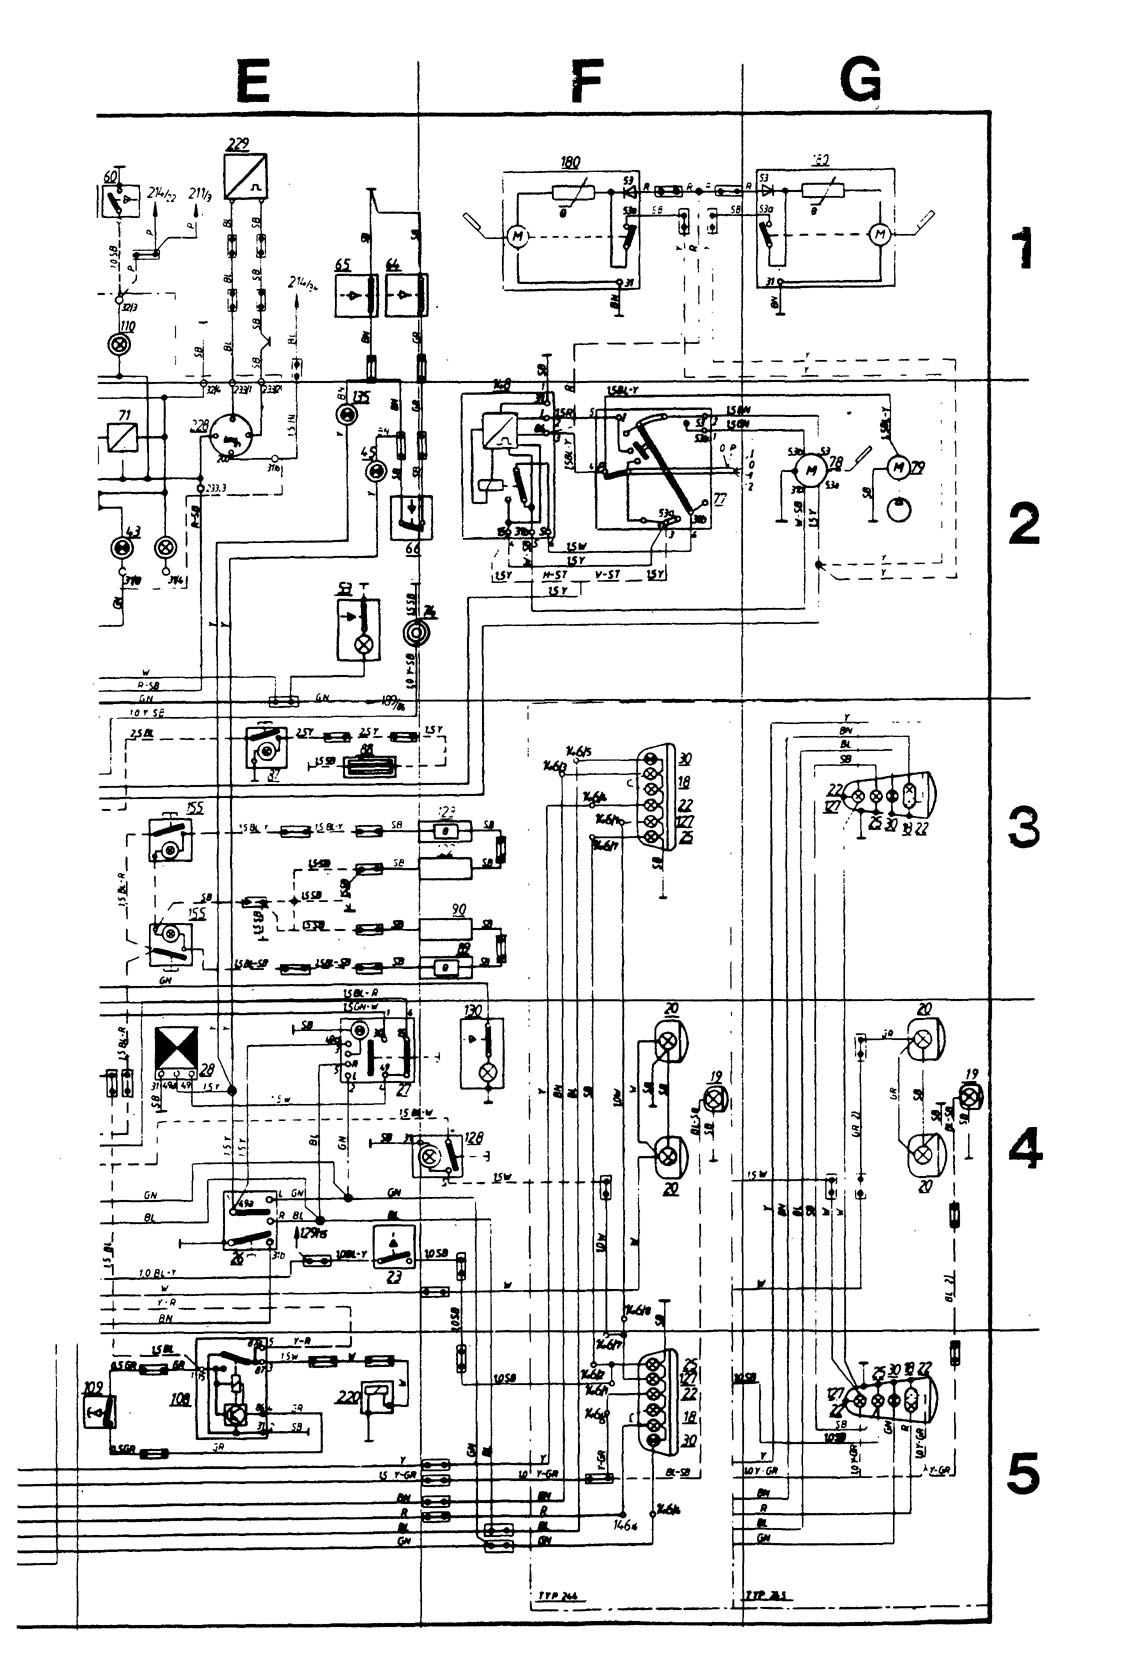 Komatsu Oil Cooler Also Ford F 150 Starter Solenoid Wiring Diagram